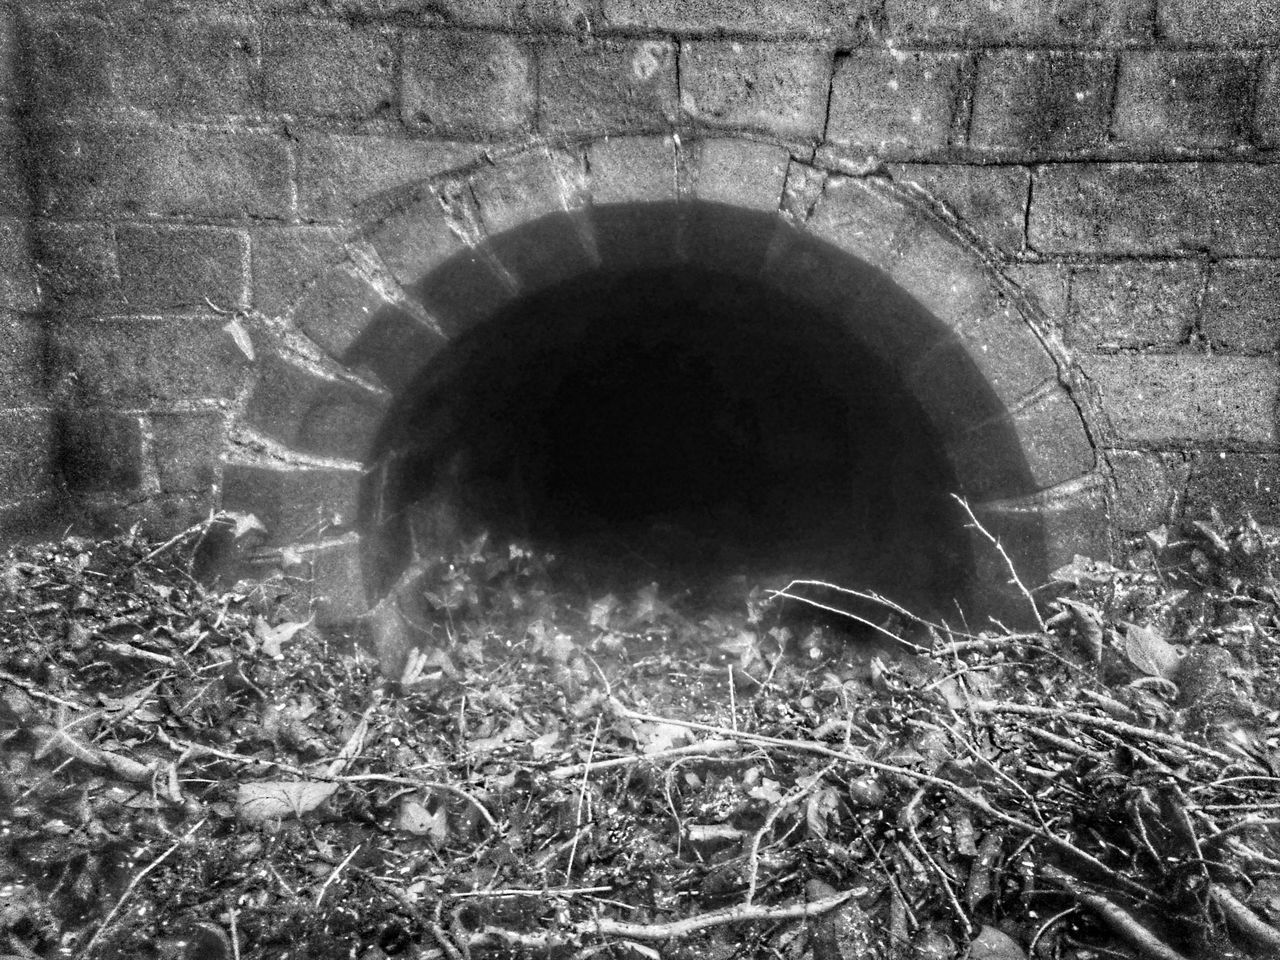 Canal Life Abstract Full Frame Backgrounds Textured  Tunnel Vision TunnelPorn Tunnel Series Drainage Channel Canals And Waterways Disused Canal DISUSED Ivy Covered Brickporn Brick Wall Arch Architecture_collection Abandoned Places Severn Way